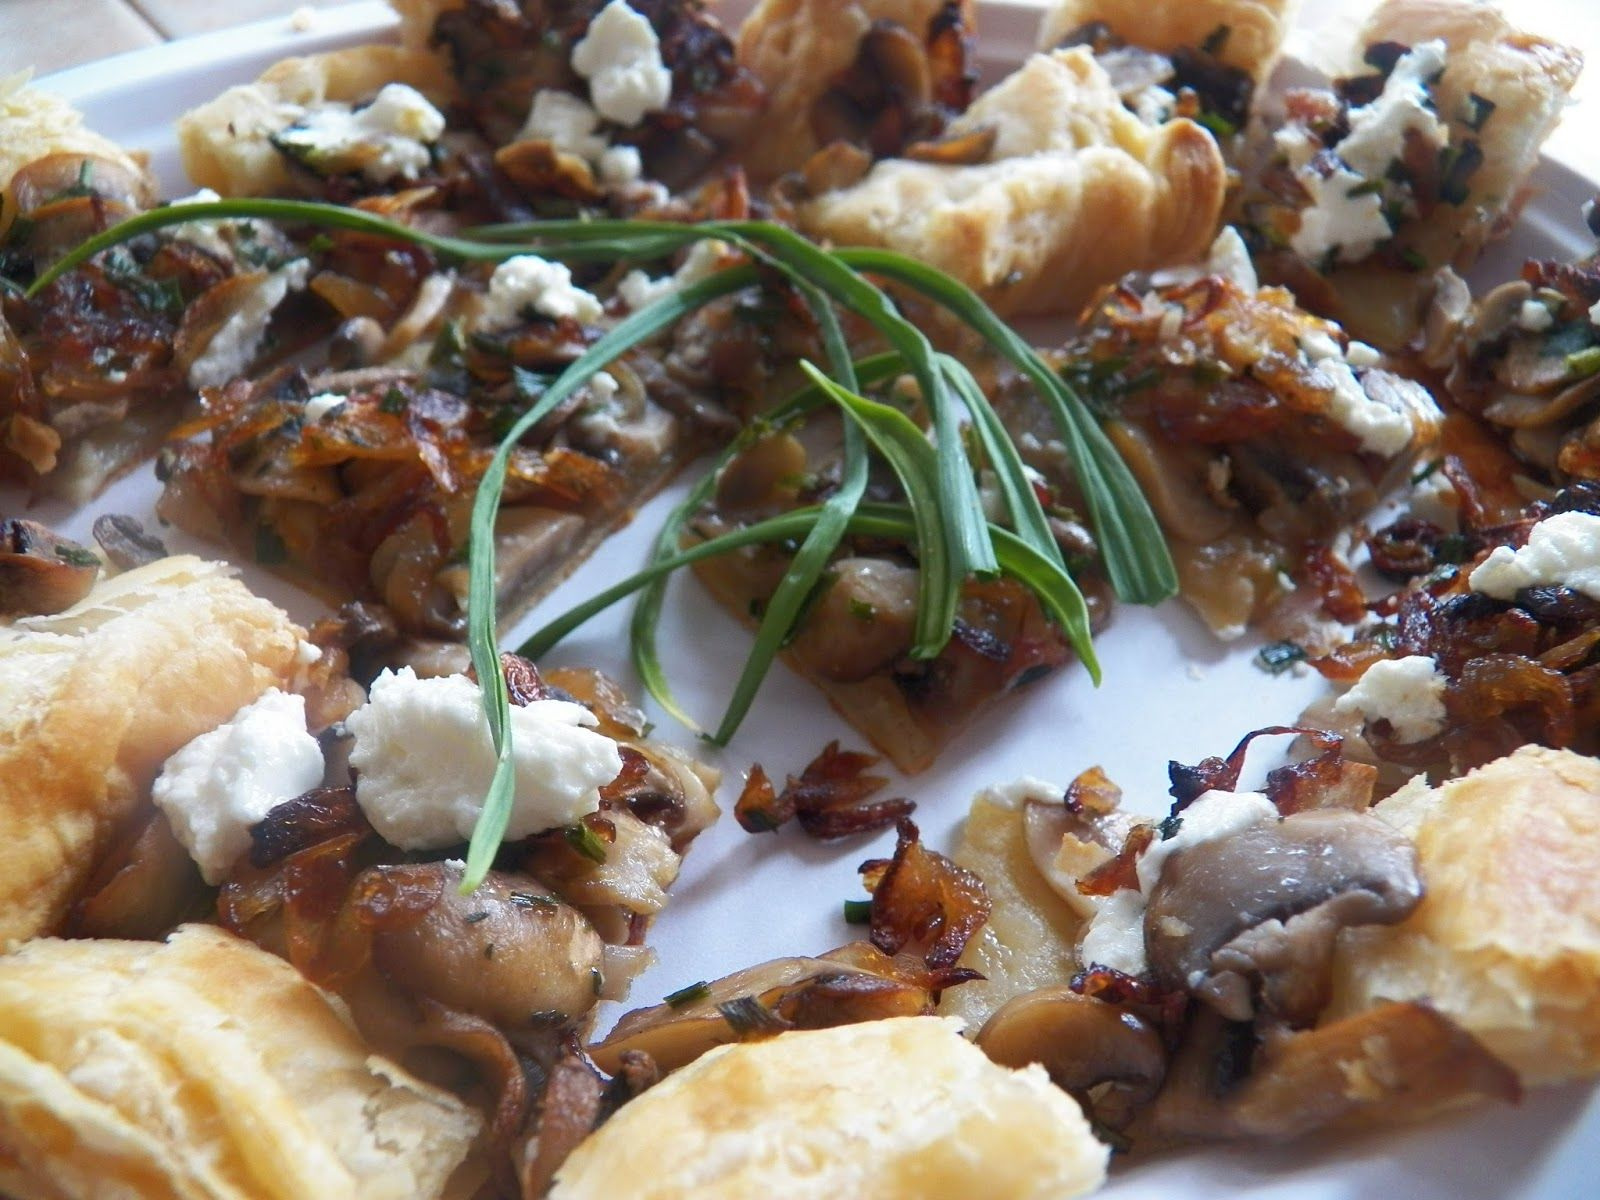 Sid's Sea Palm Cooking: Caramelized Shallot, Mushrooms and Garlic Scape Tart